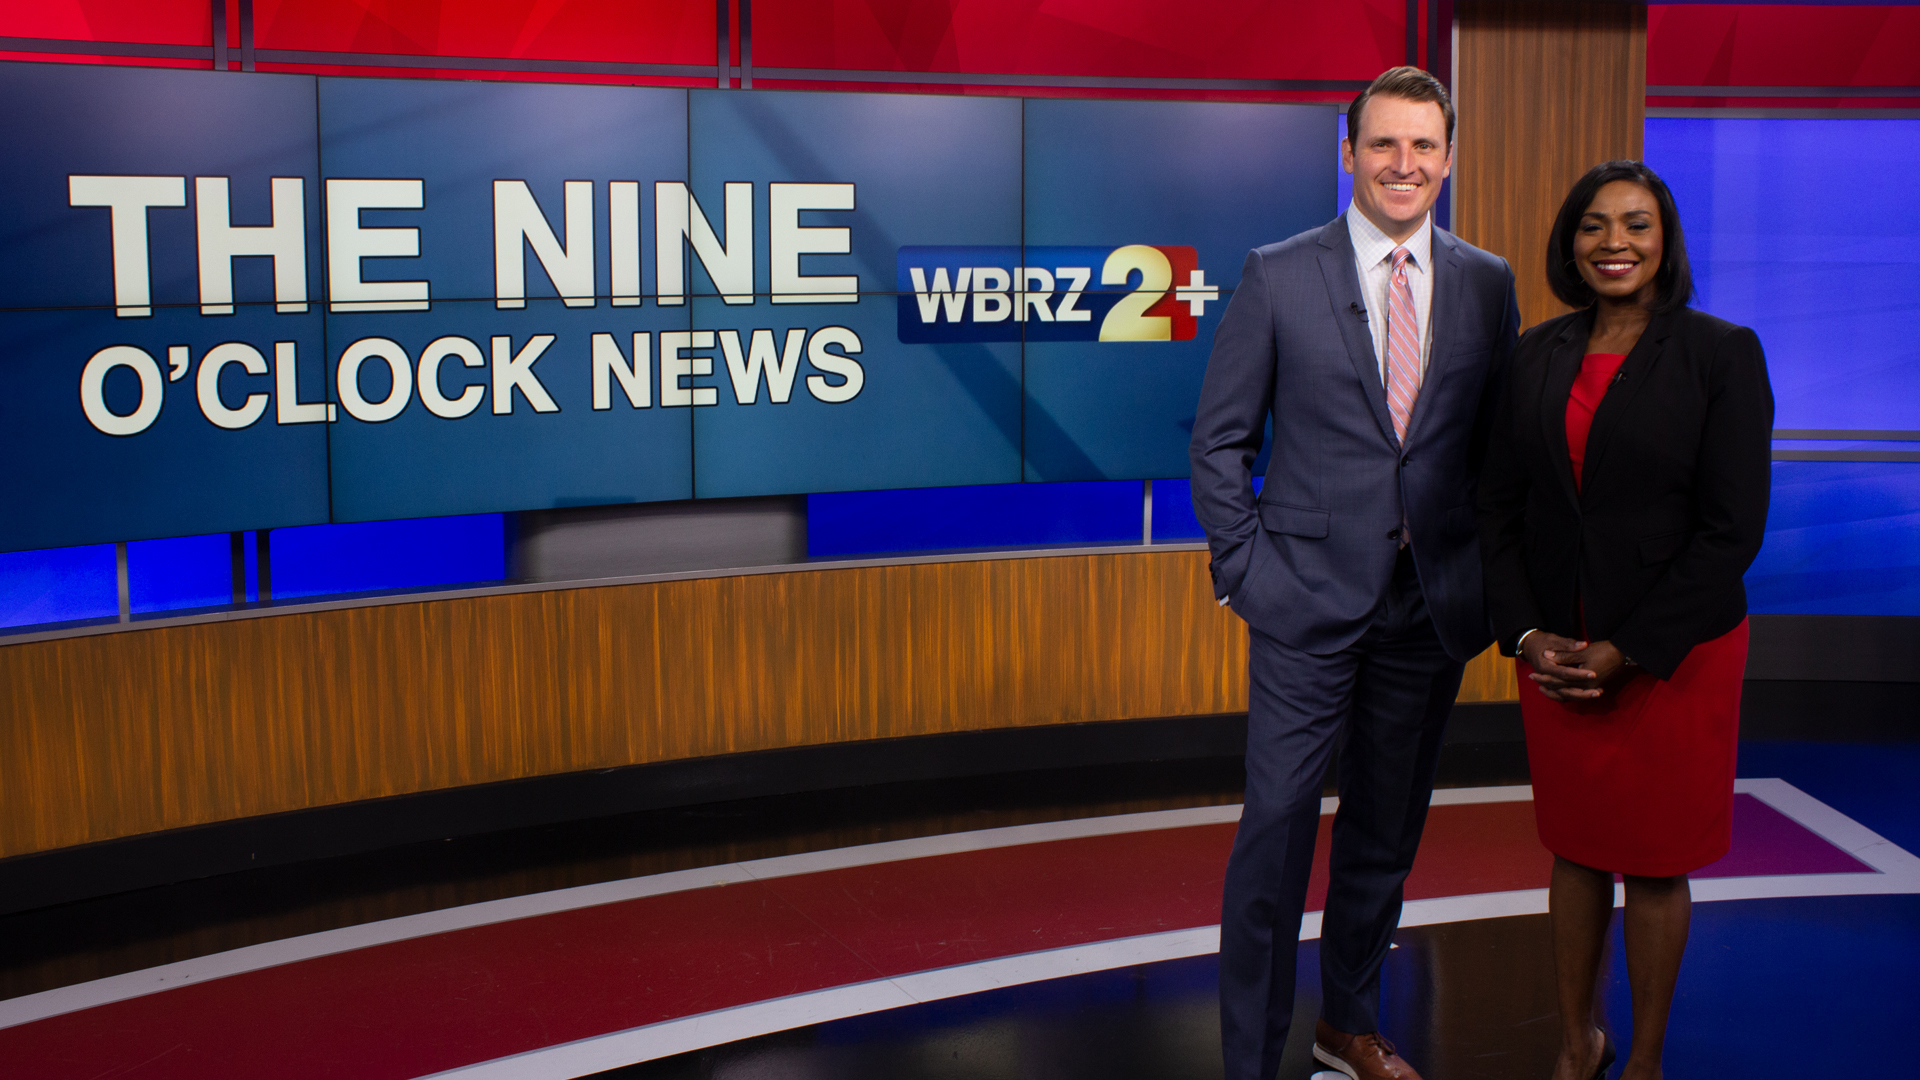 male and female anchor of WBRZ the Nine o'clock news